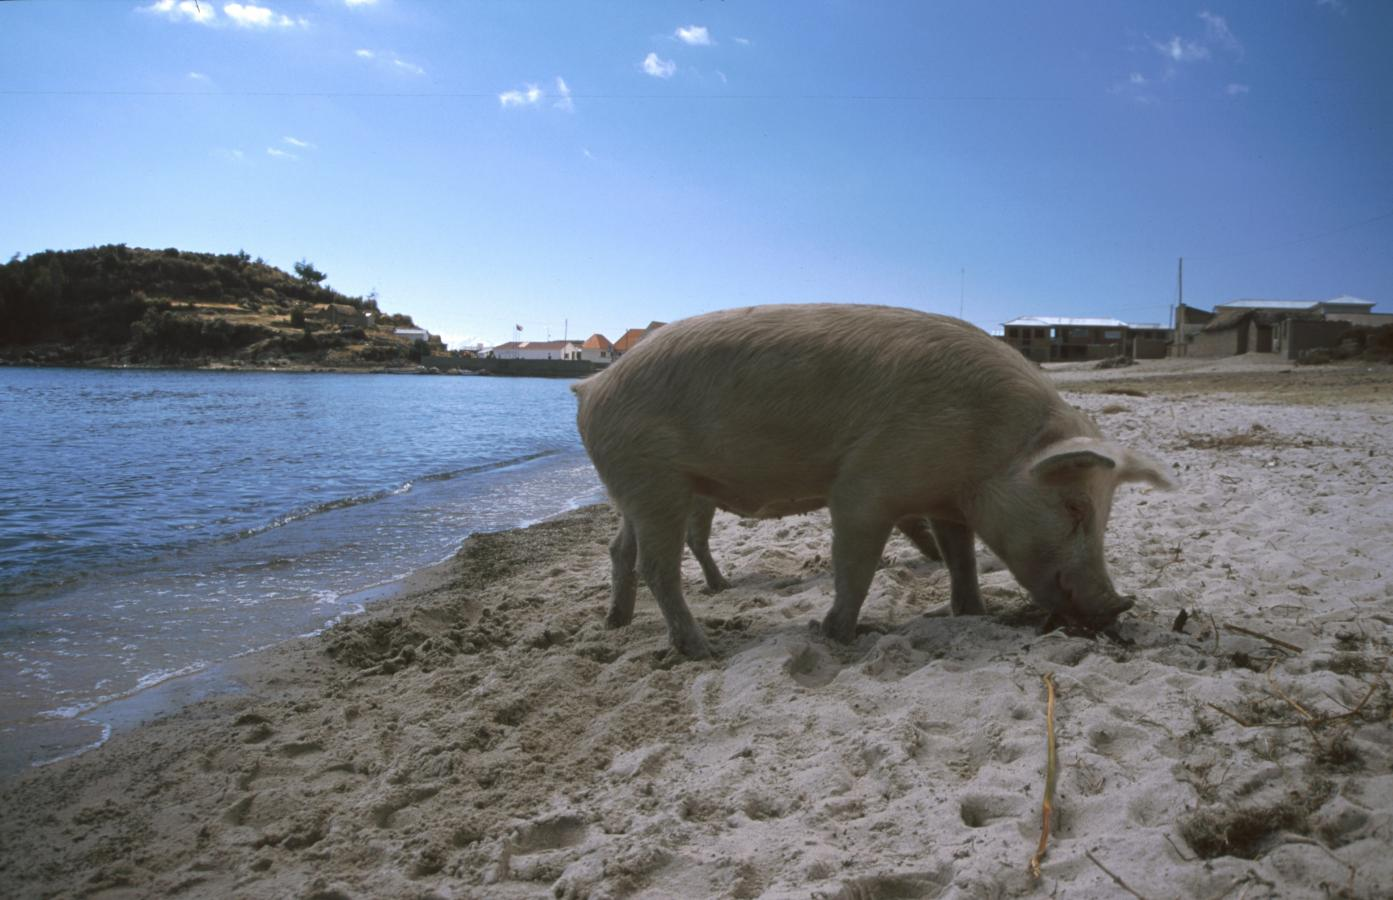 pigs-on-the-beach-lake-titicaca-peru-2001